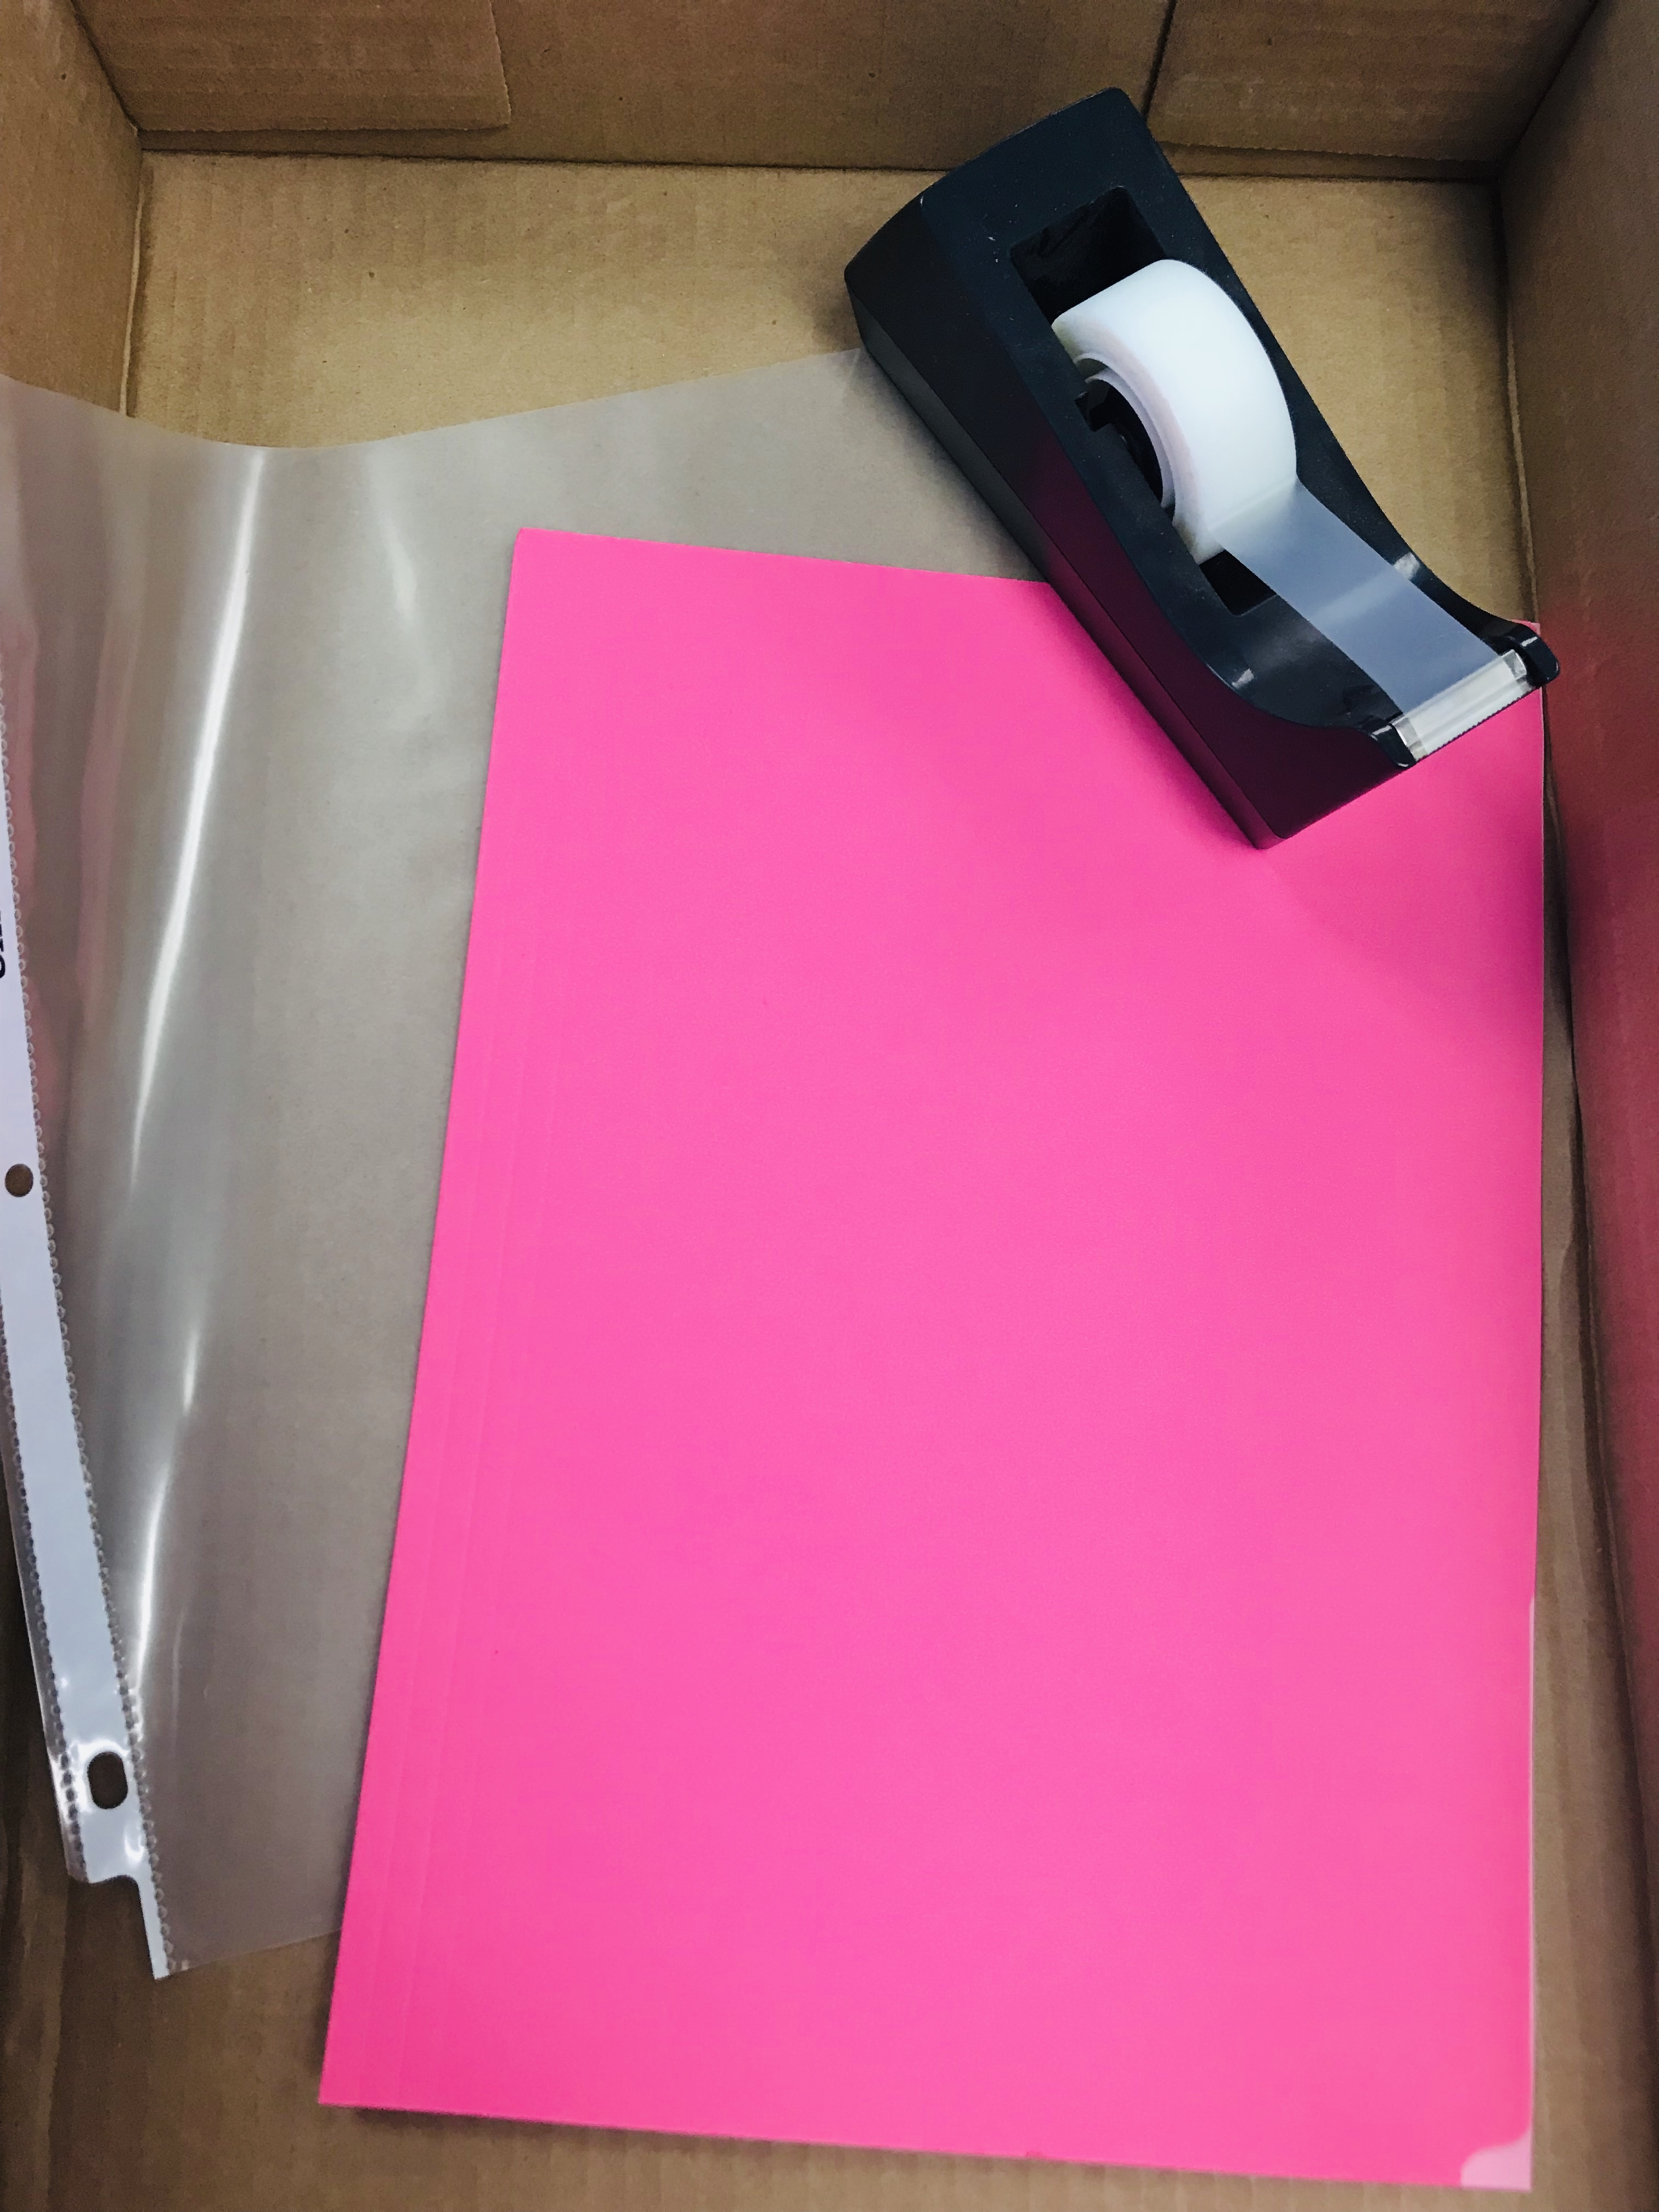 Pink paper, tape, and sheet protector